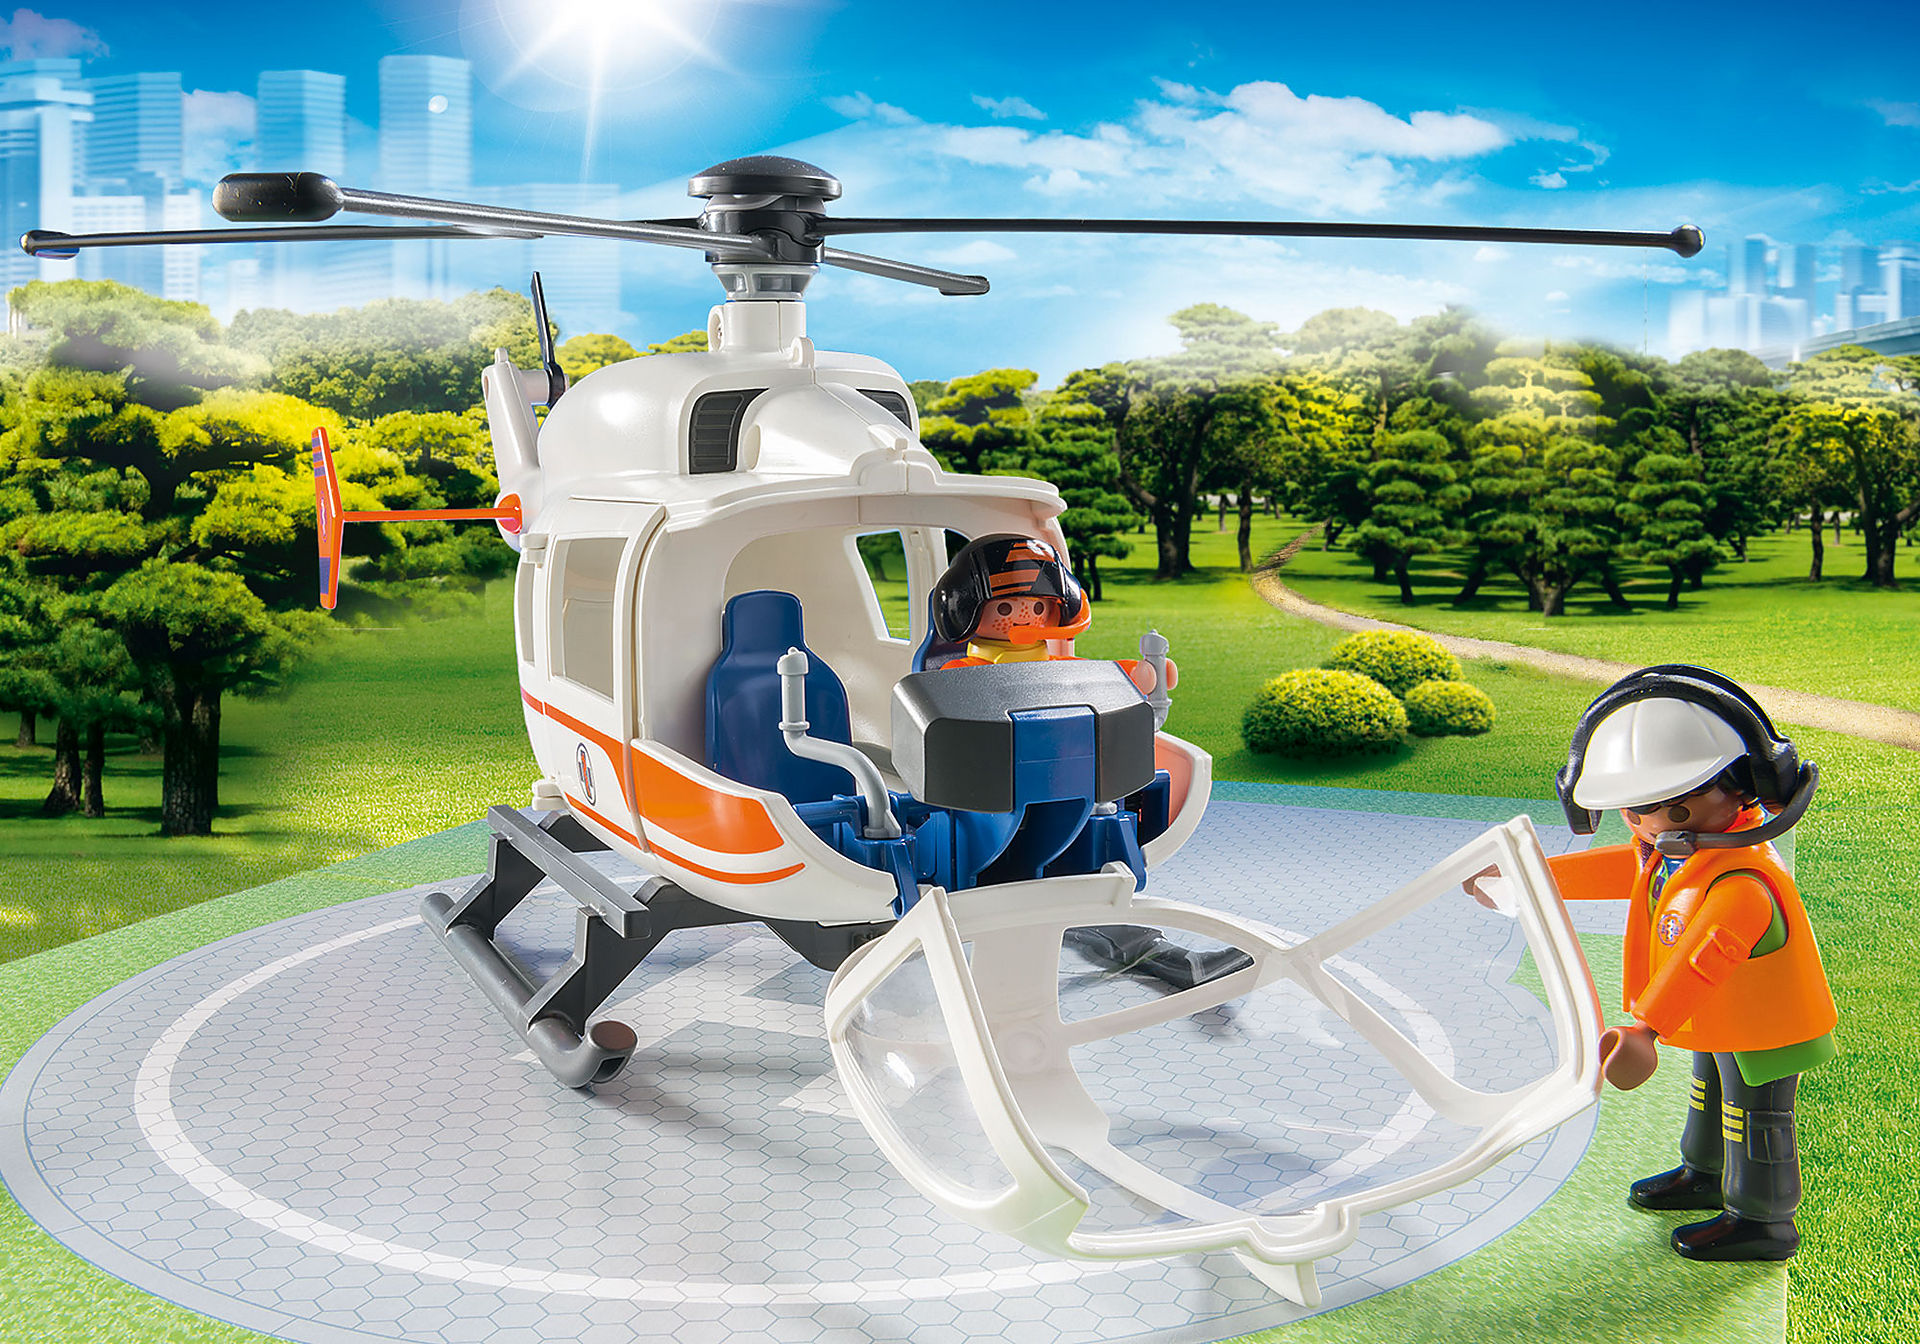 http://media.playmobil.com/i/playmobil/70048_product_extra1/Eerste hulp helikopter